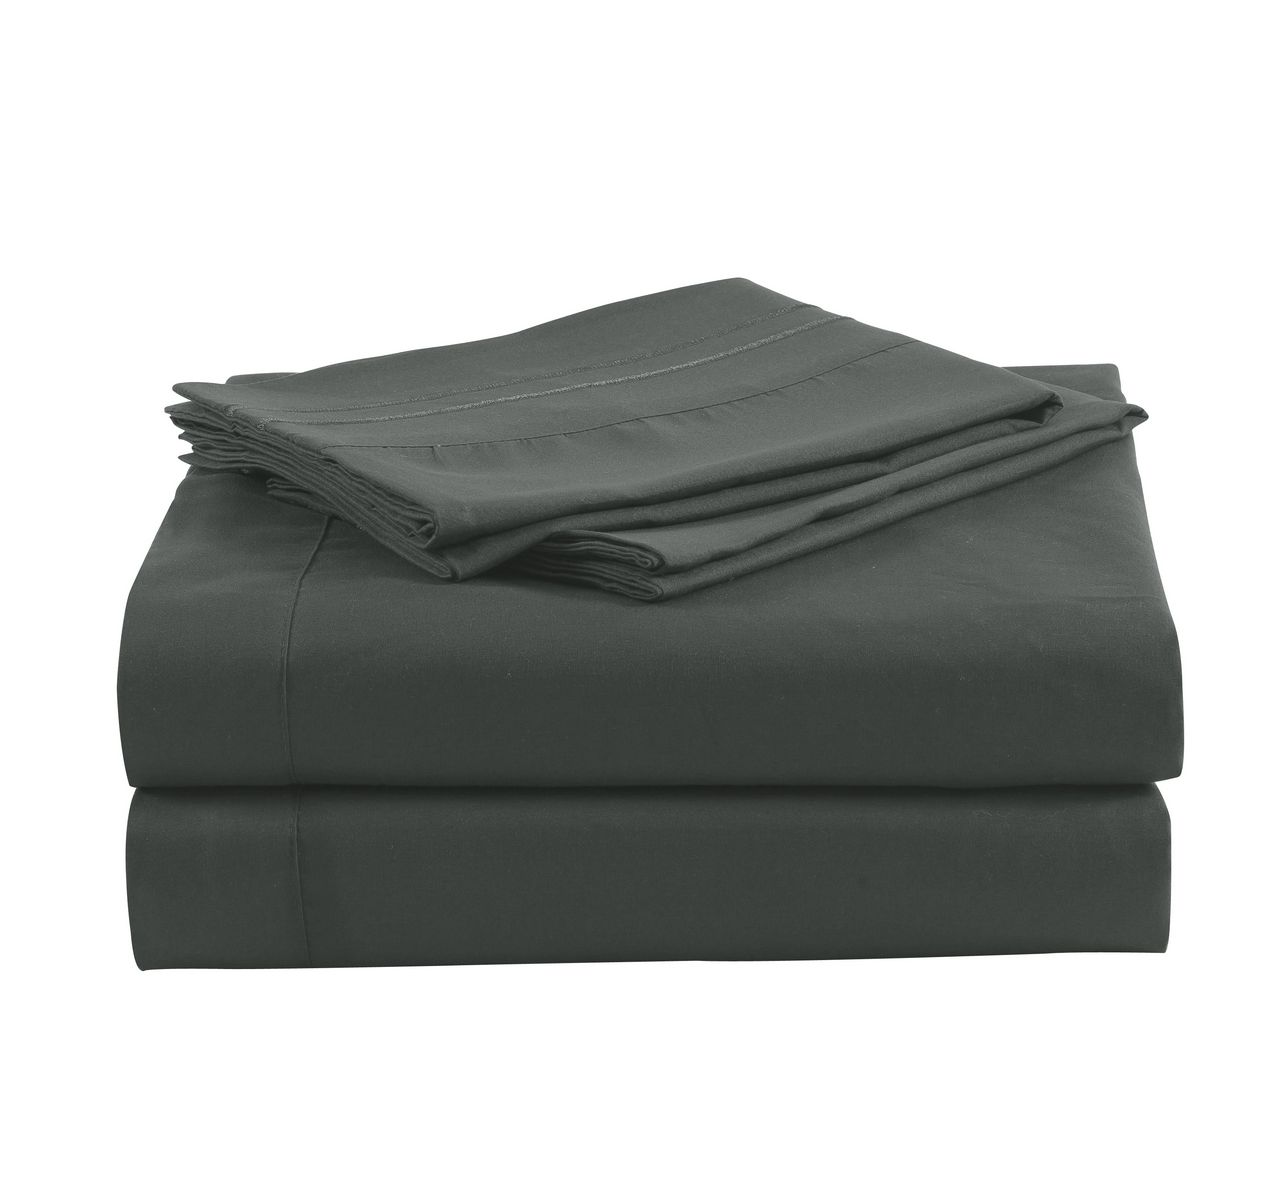 Highest Rated Bed Sheets 1600 Thread Count Sheet Set Egyptian Quality Exclusively